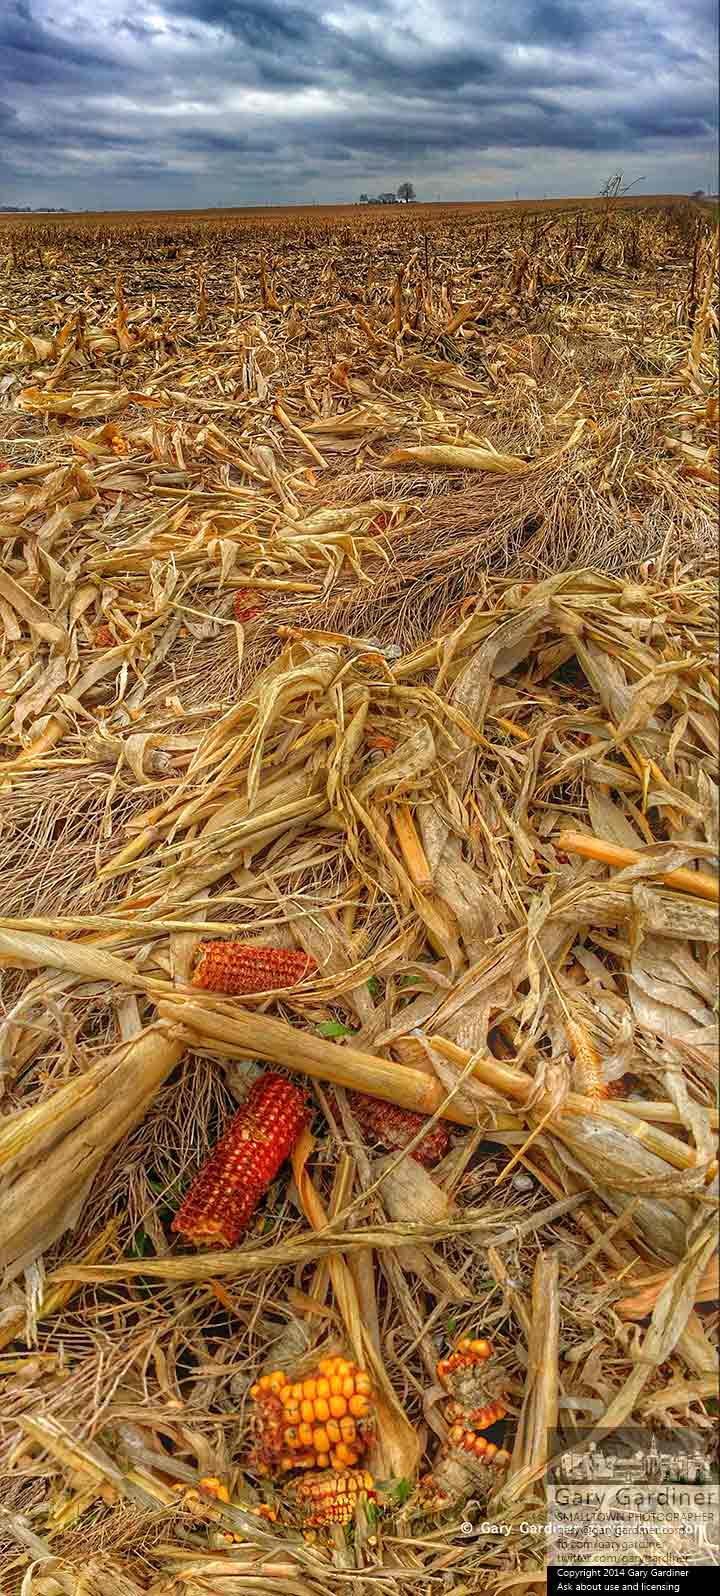 Corn stubble lies in a wet field near a house on farm near Croton, Ohio, on Thanksgiving. My Final Photo for Nov. 27, 2014.